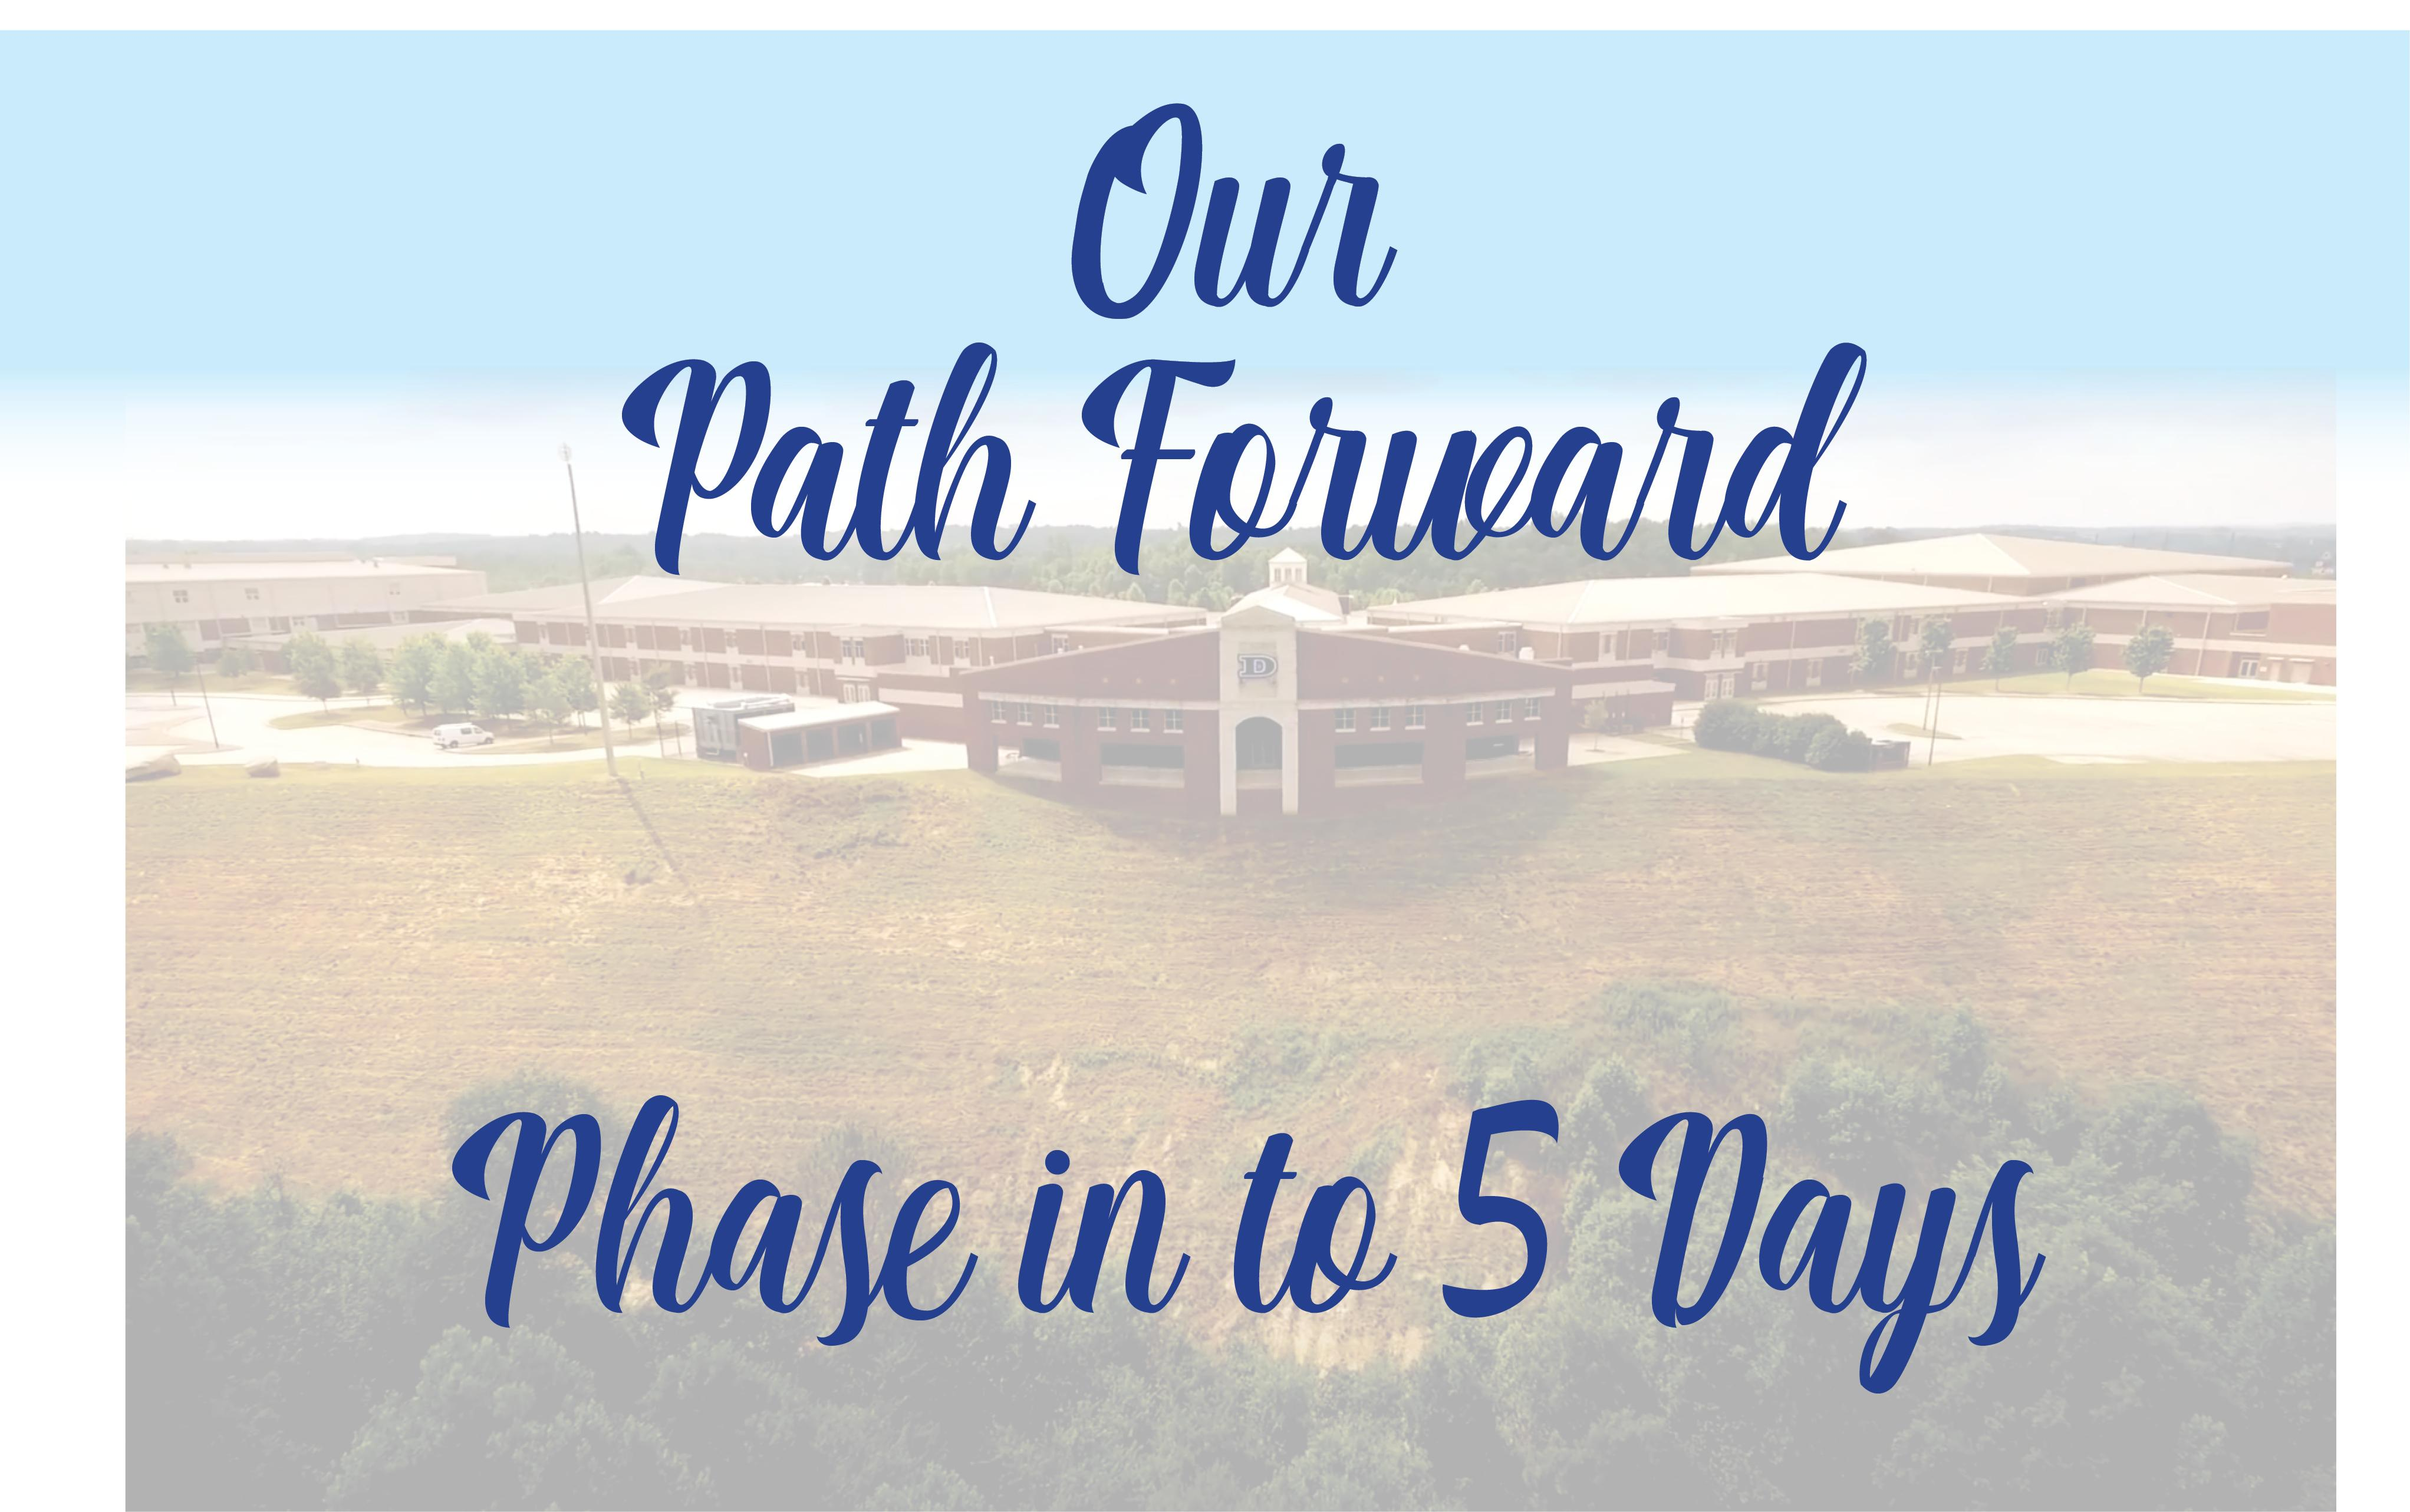 Our path forward - phase in to five days